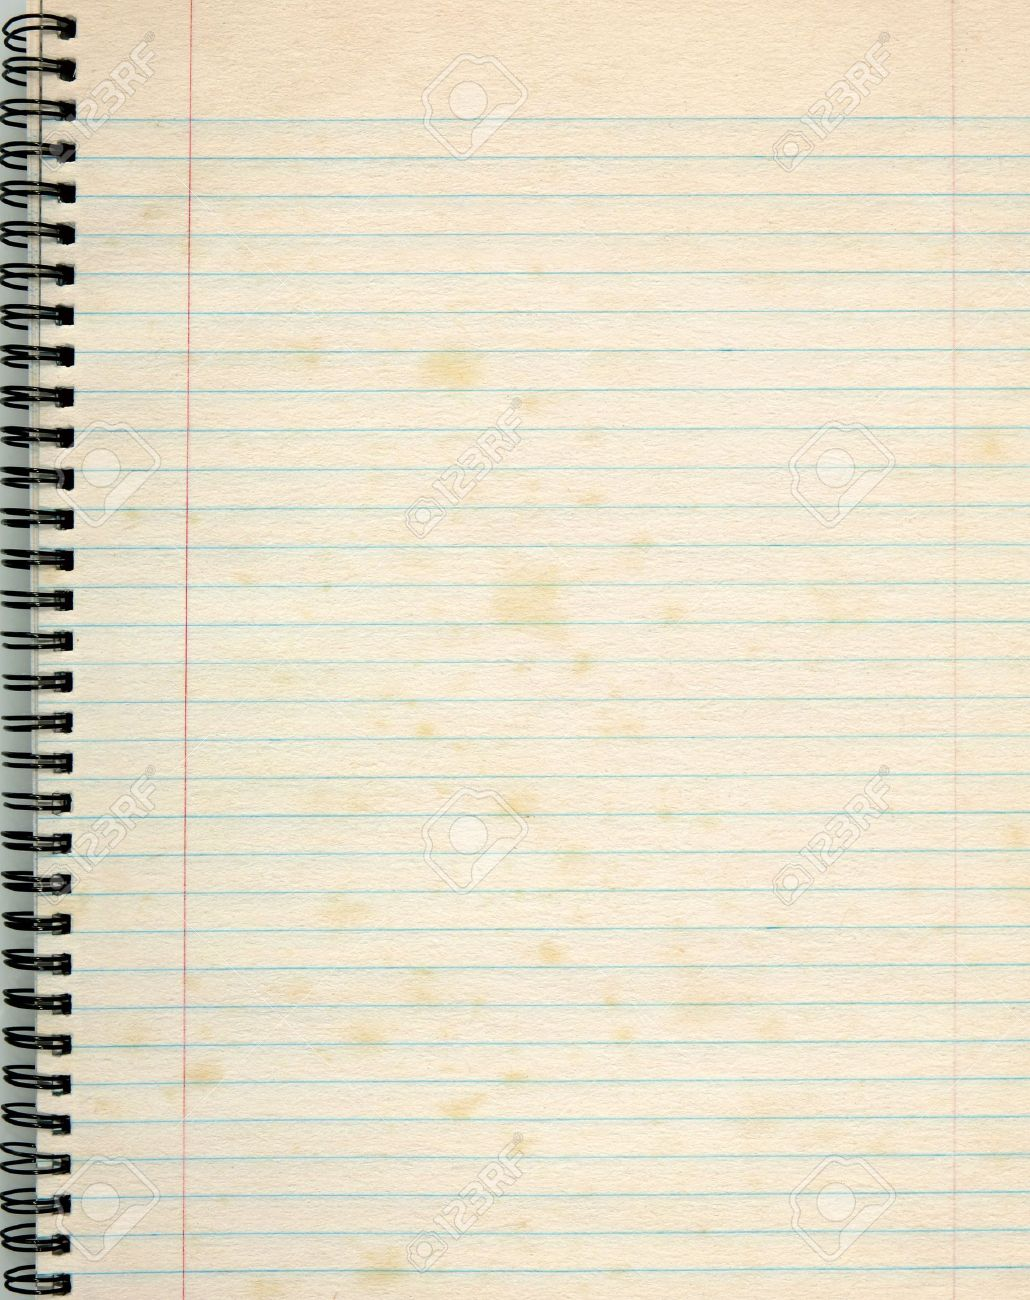 Old lined paper in a notepad. Stock Photo - 7415239